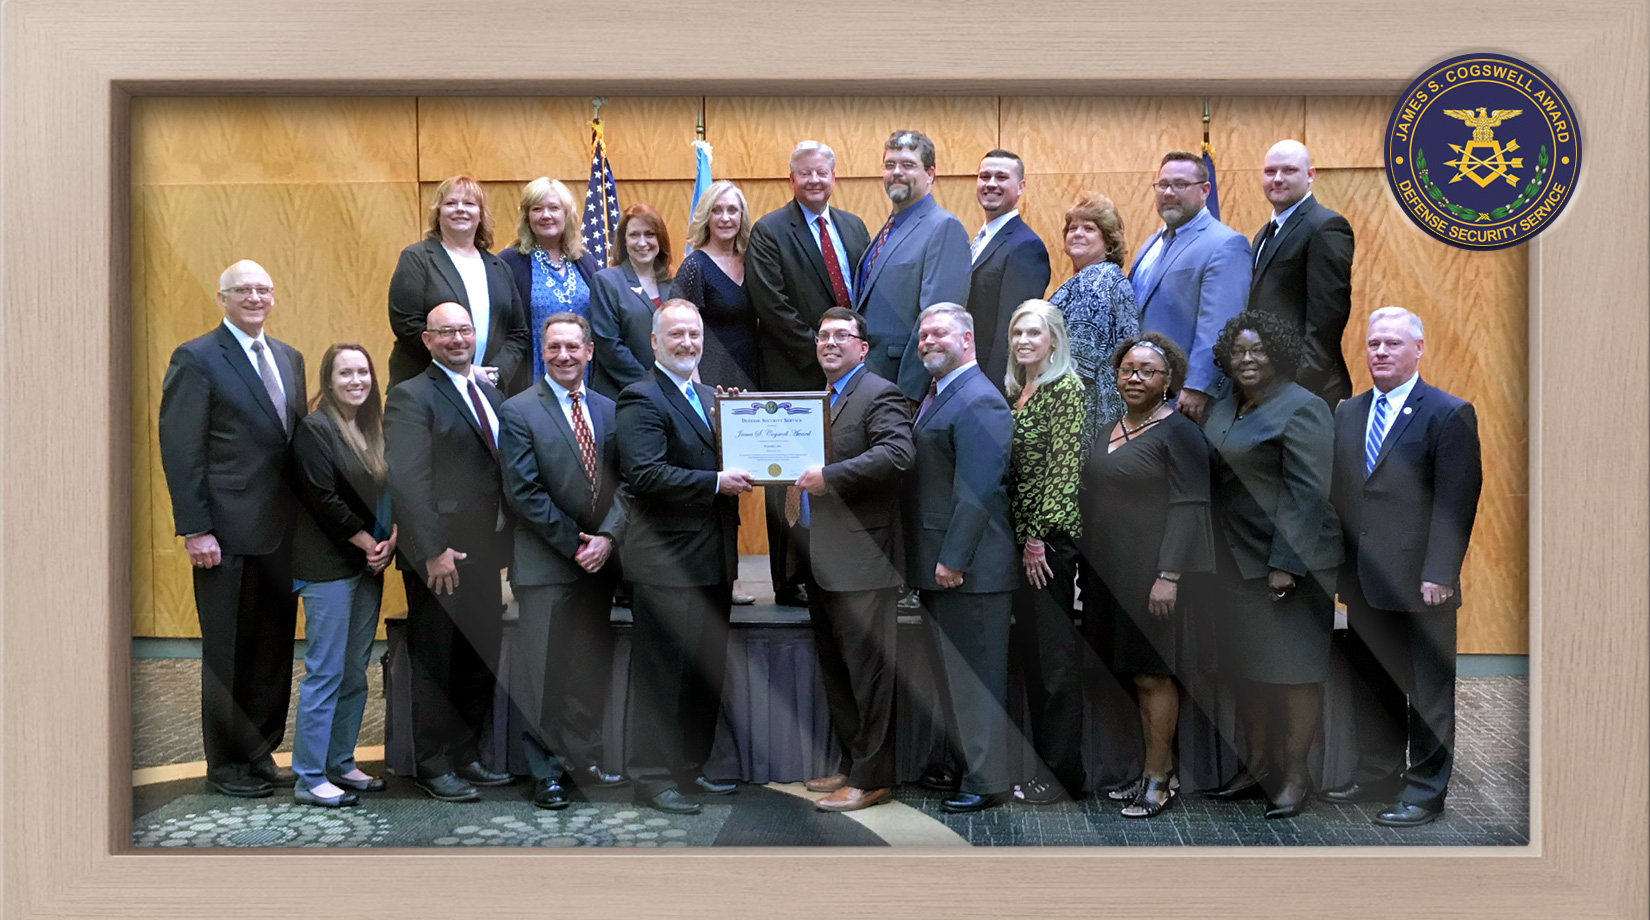 Defense Security Service honors Dynetics with the Cogswell Award banner image